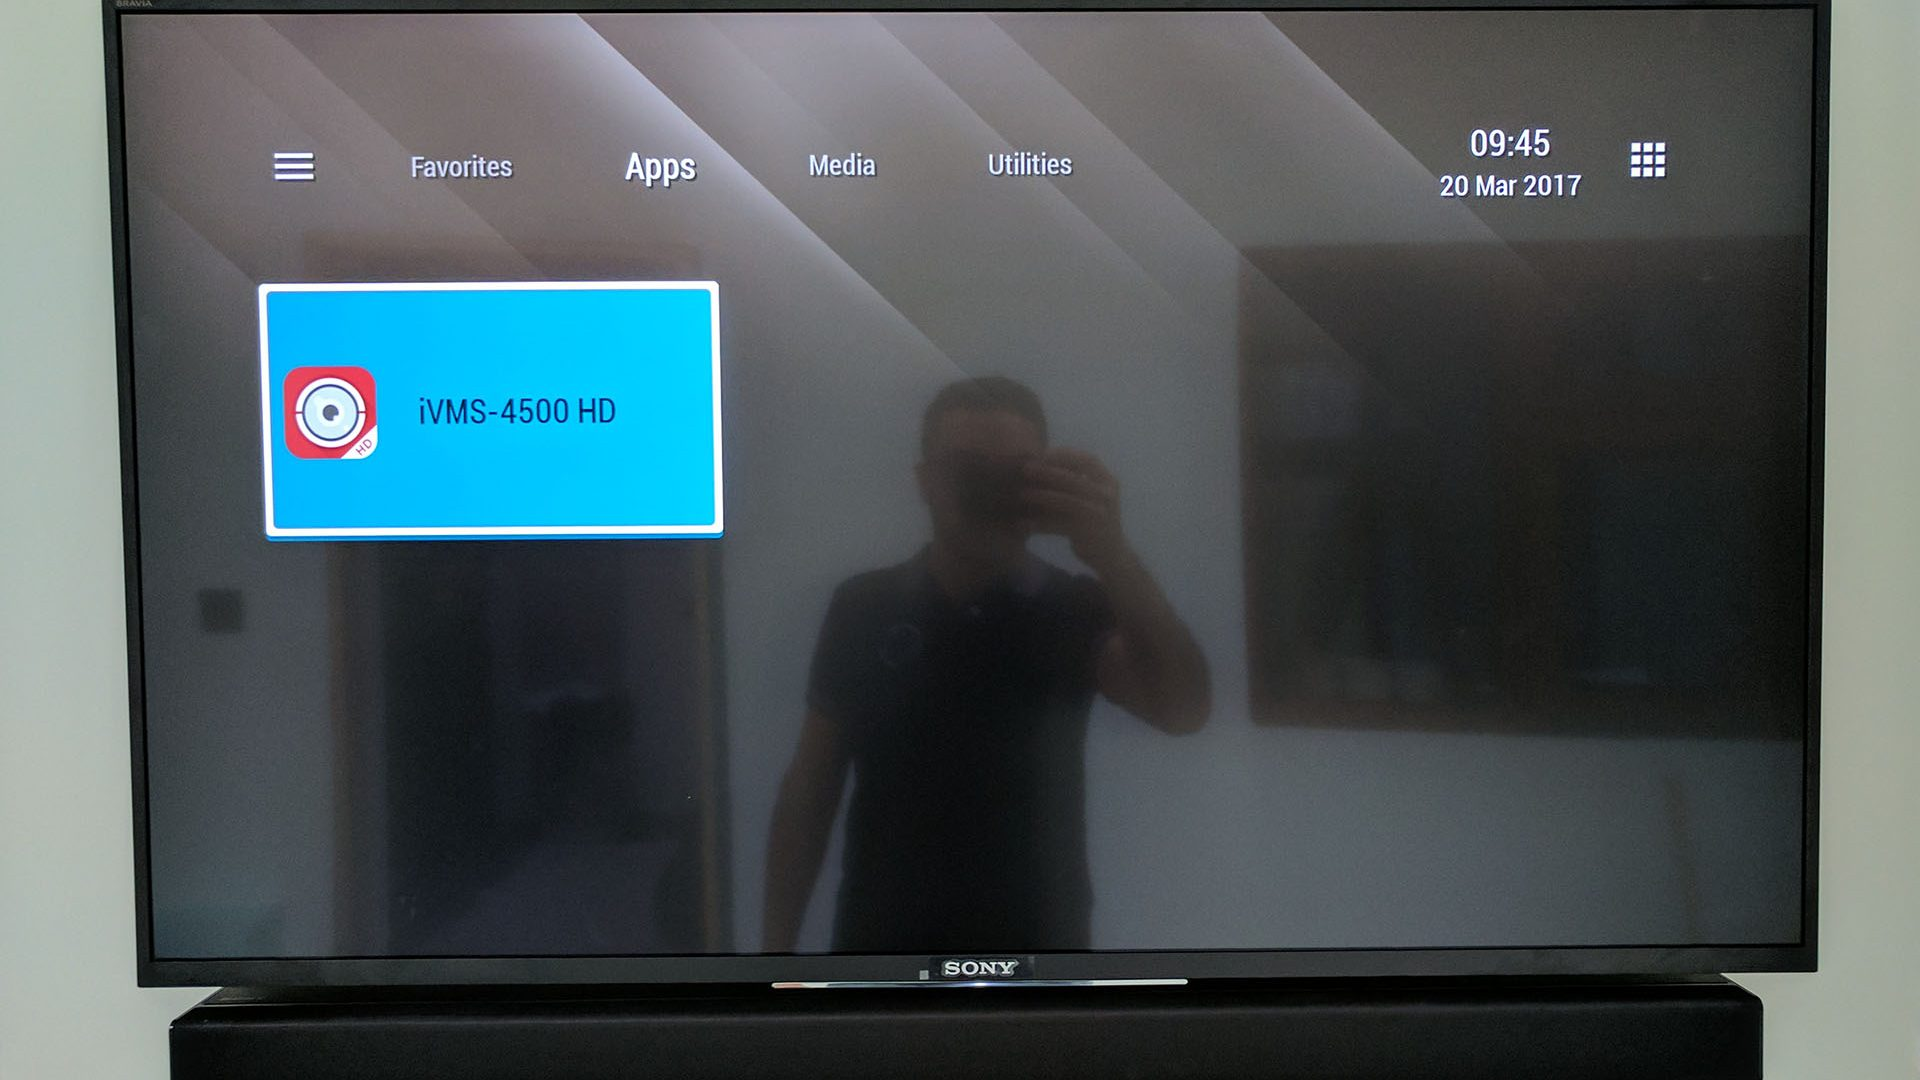 How to install Hikvision iVMS-4500 HD on a Smart TV (by Ahmet Deveci)